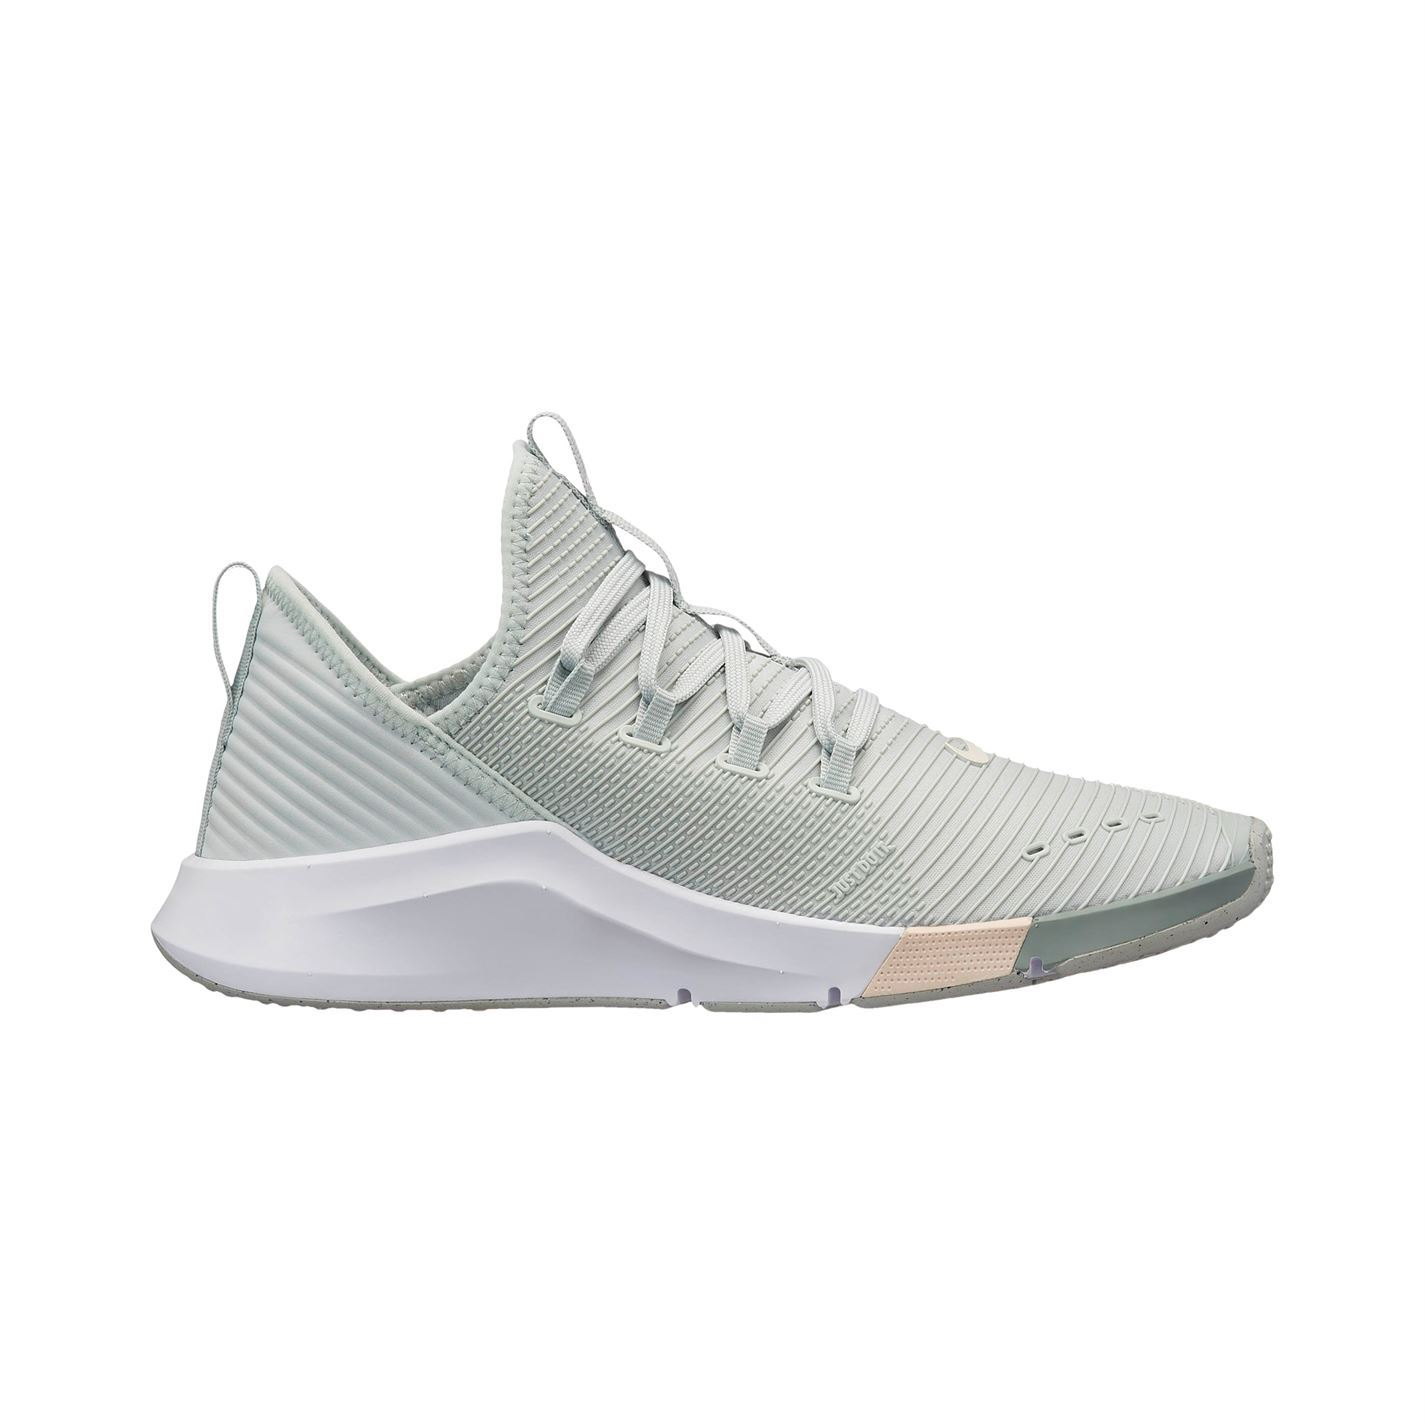 f5a7f2ff7d3d ... Nike Air Zoom Elevate Training Shoes Womens Fitness Gym Trainers  Sneakers